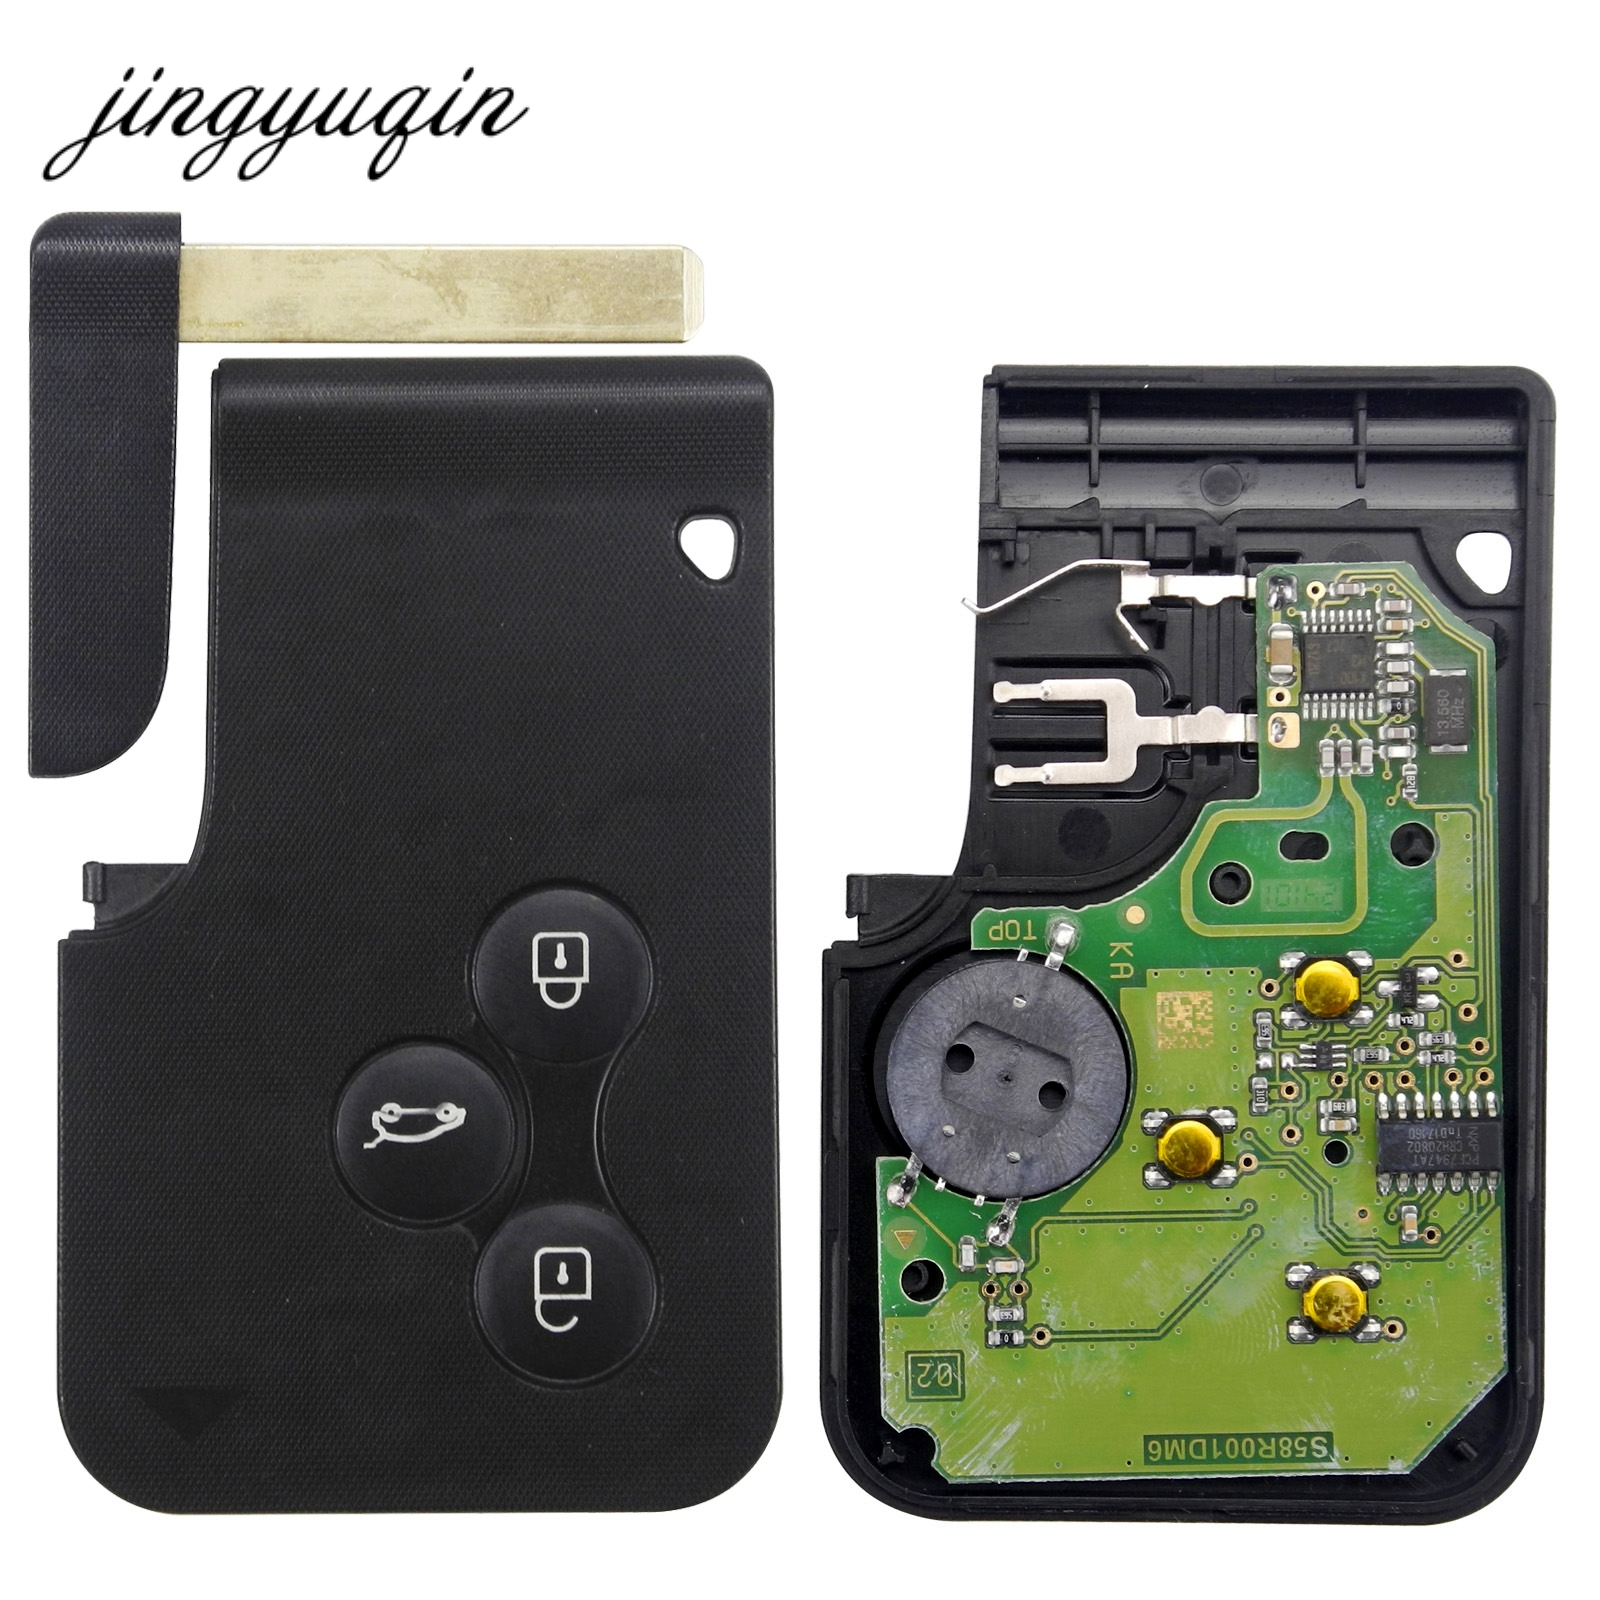 jingyuqin Smart Key Card for Renault Megane II Scenic II Grand Scenic 2003-2008 433mhz PCF7947 Chip ID46 3 Button Remote PCB